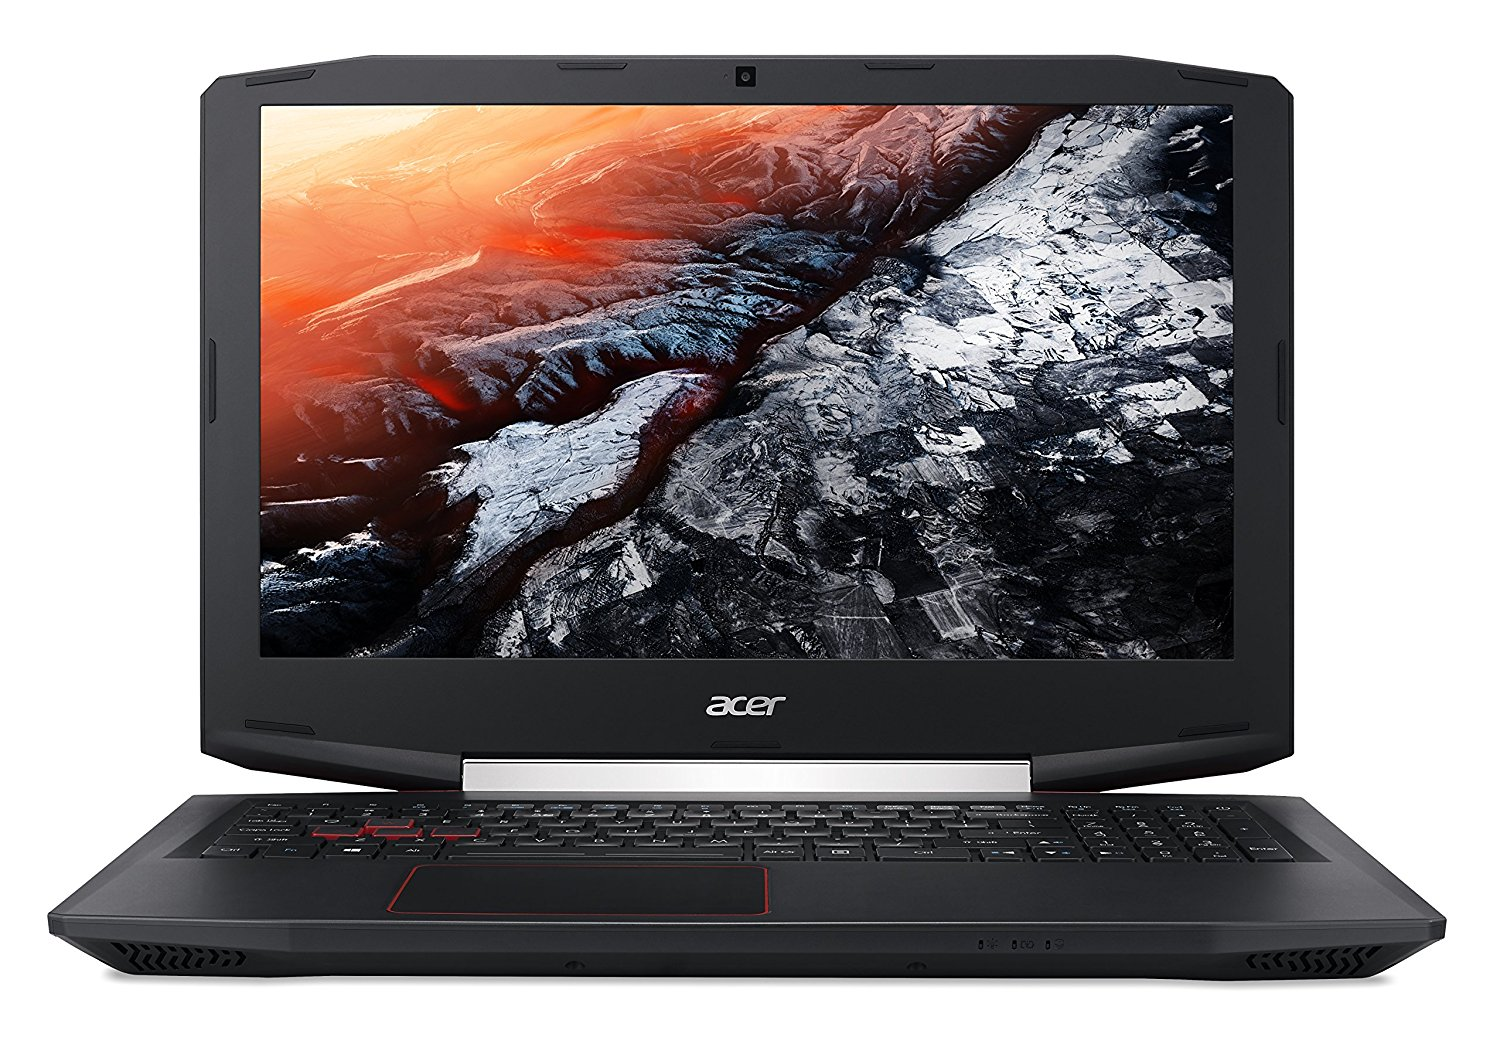 لپ تاپ - Laptop   ايسر-Acer VX5-591G-Core i7-16GB-1TB-4GB-FULL HD